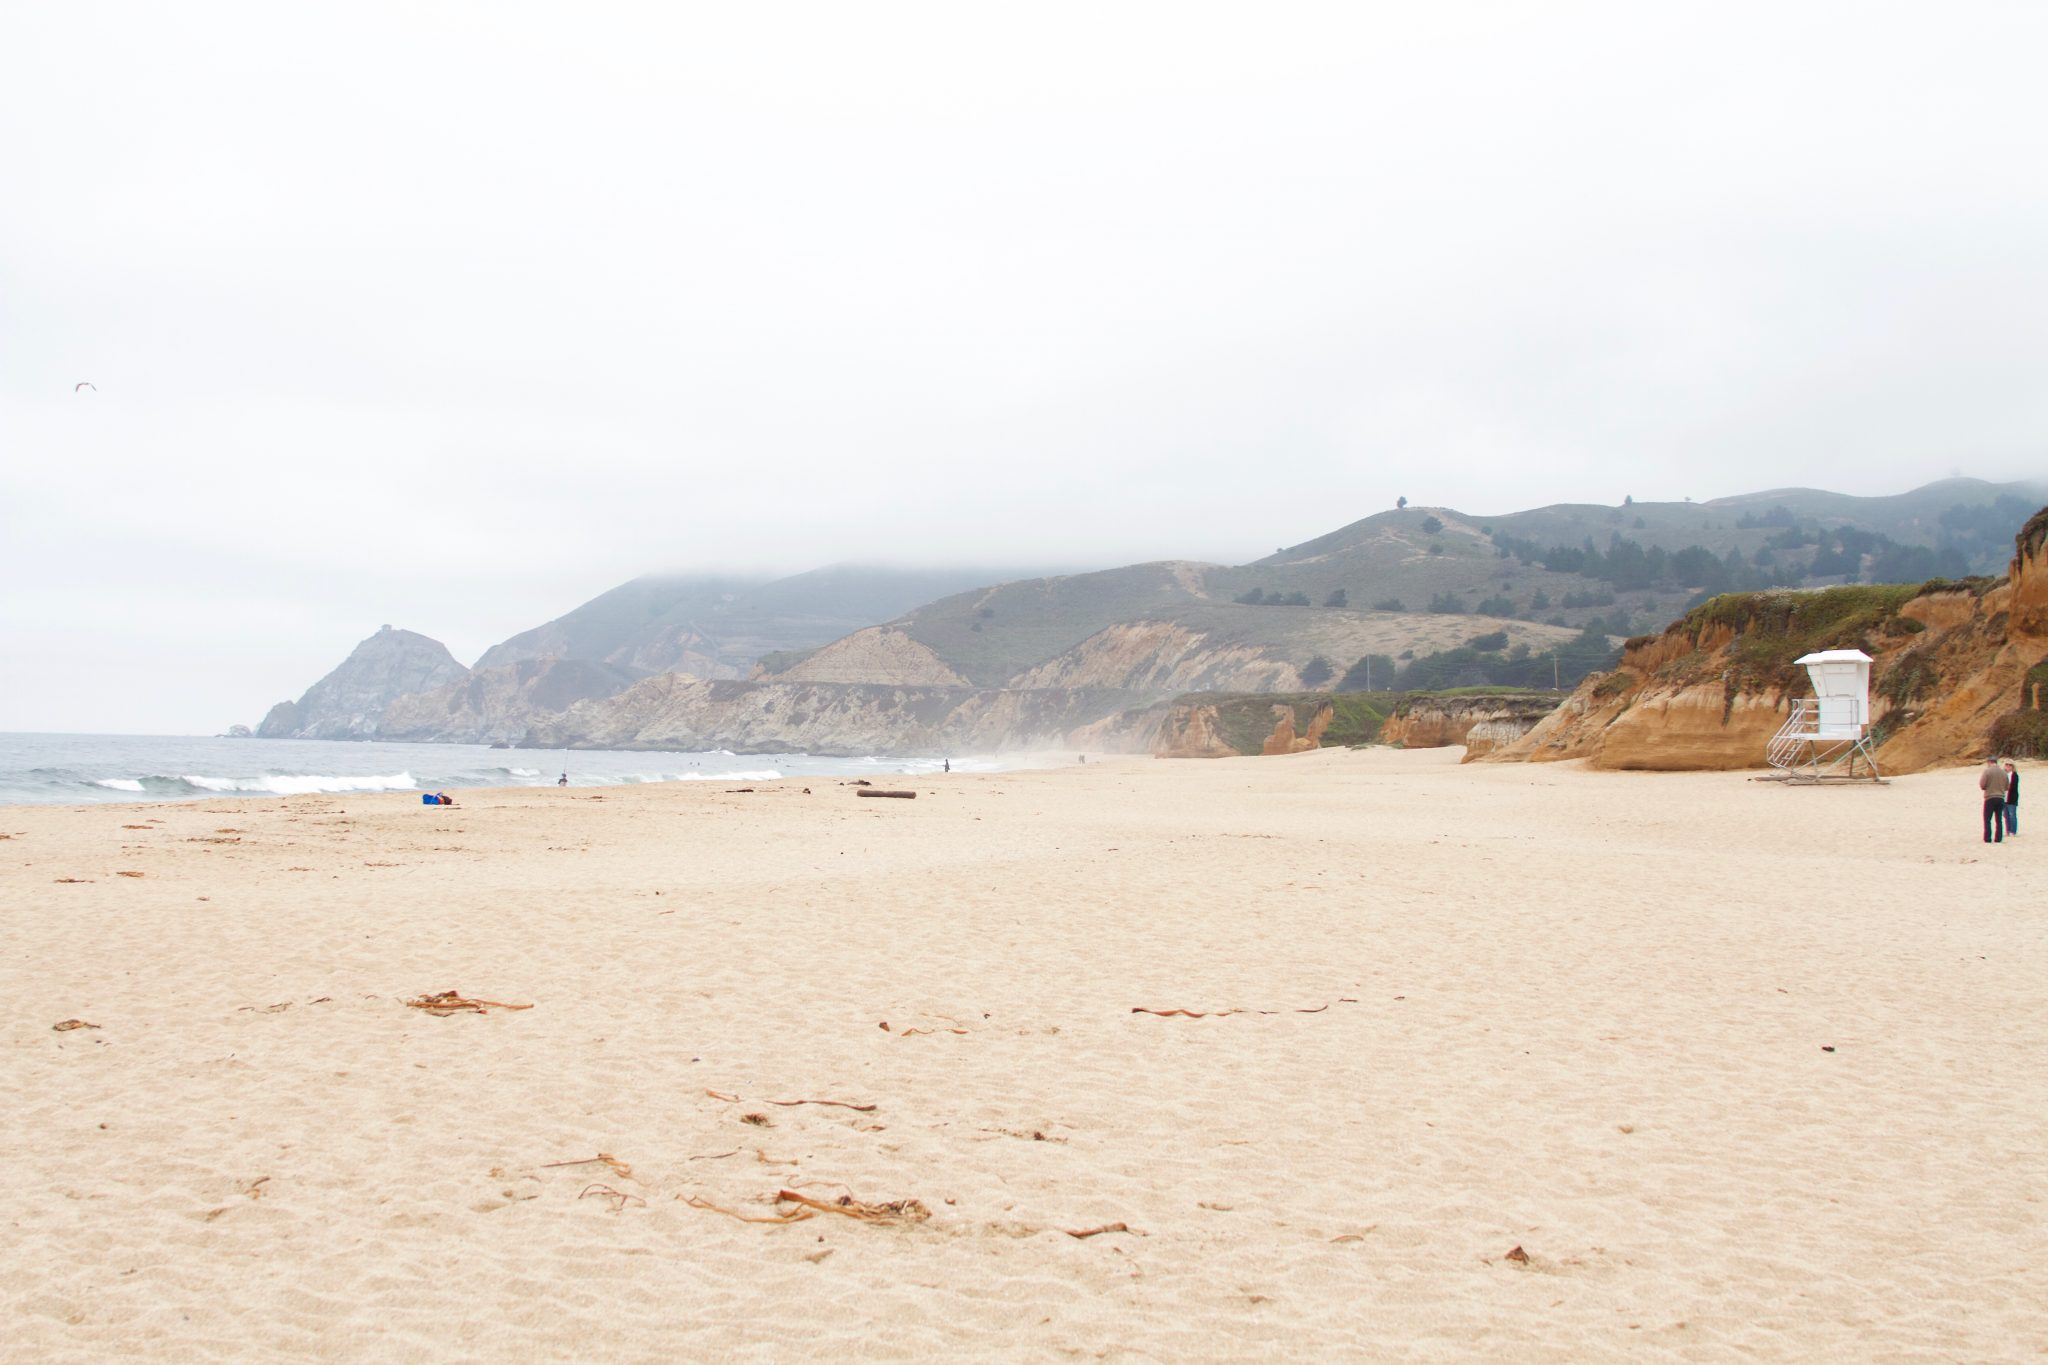 California Coast Beach Day at Montara State Beach. Photo by Jamie Balaoro // The Golden Bullet Magazine